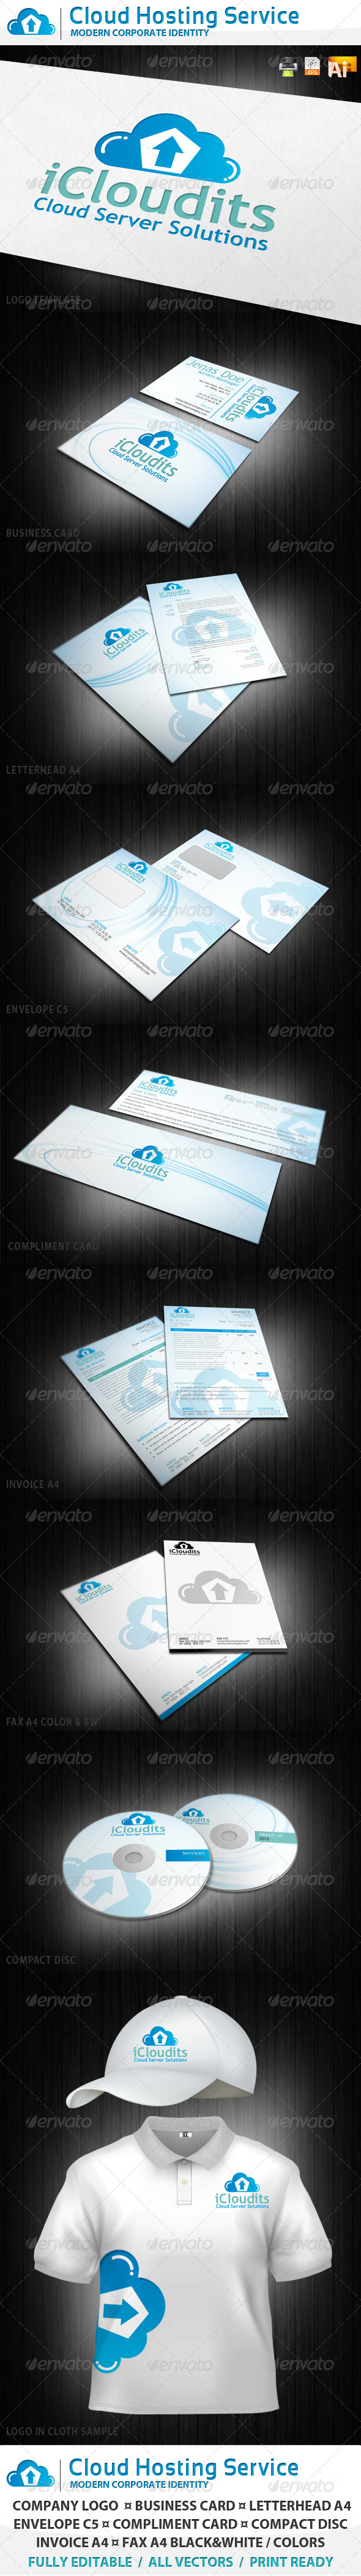 Cloud Hosting Service Corporate Identity - Stationery Print Templates